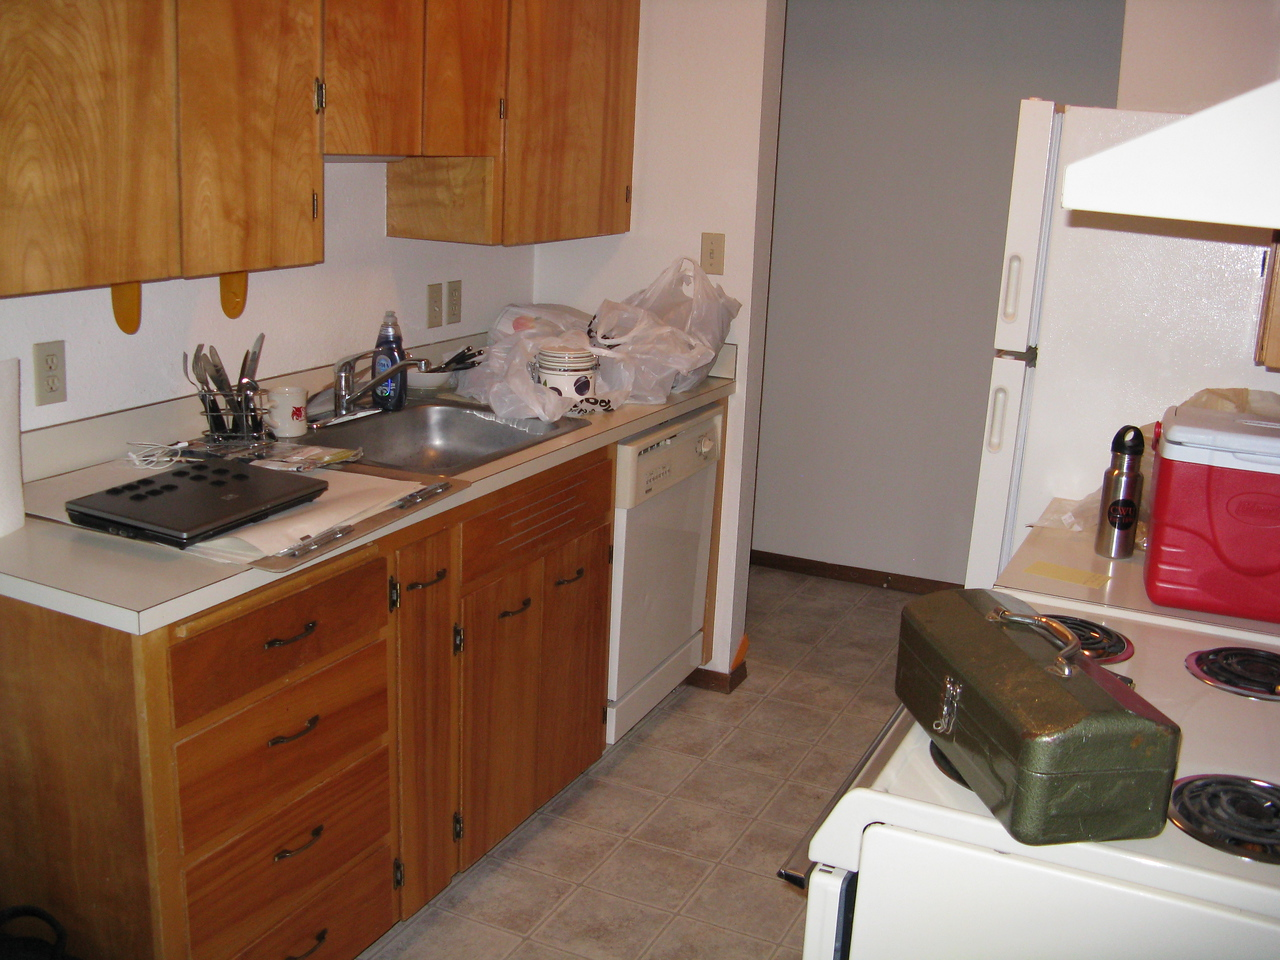 Kevin liked the kitchen because it has a dishwasher.